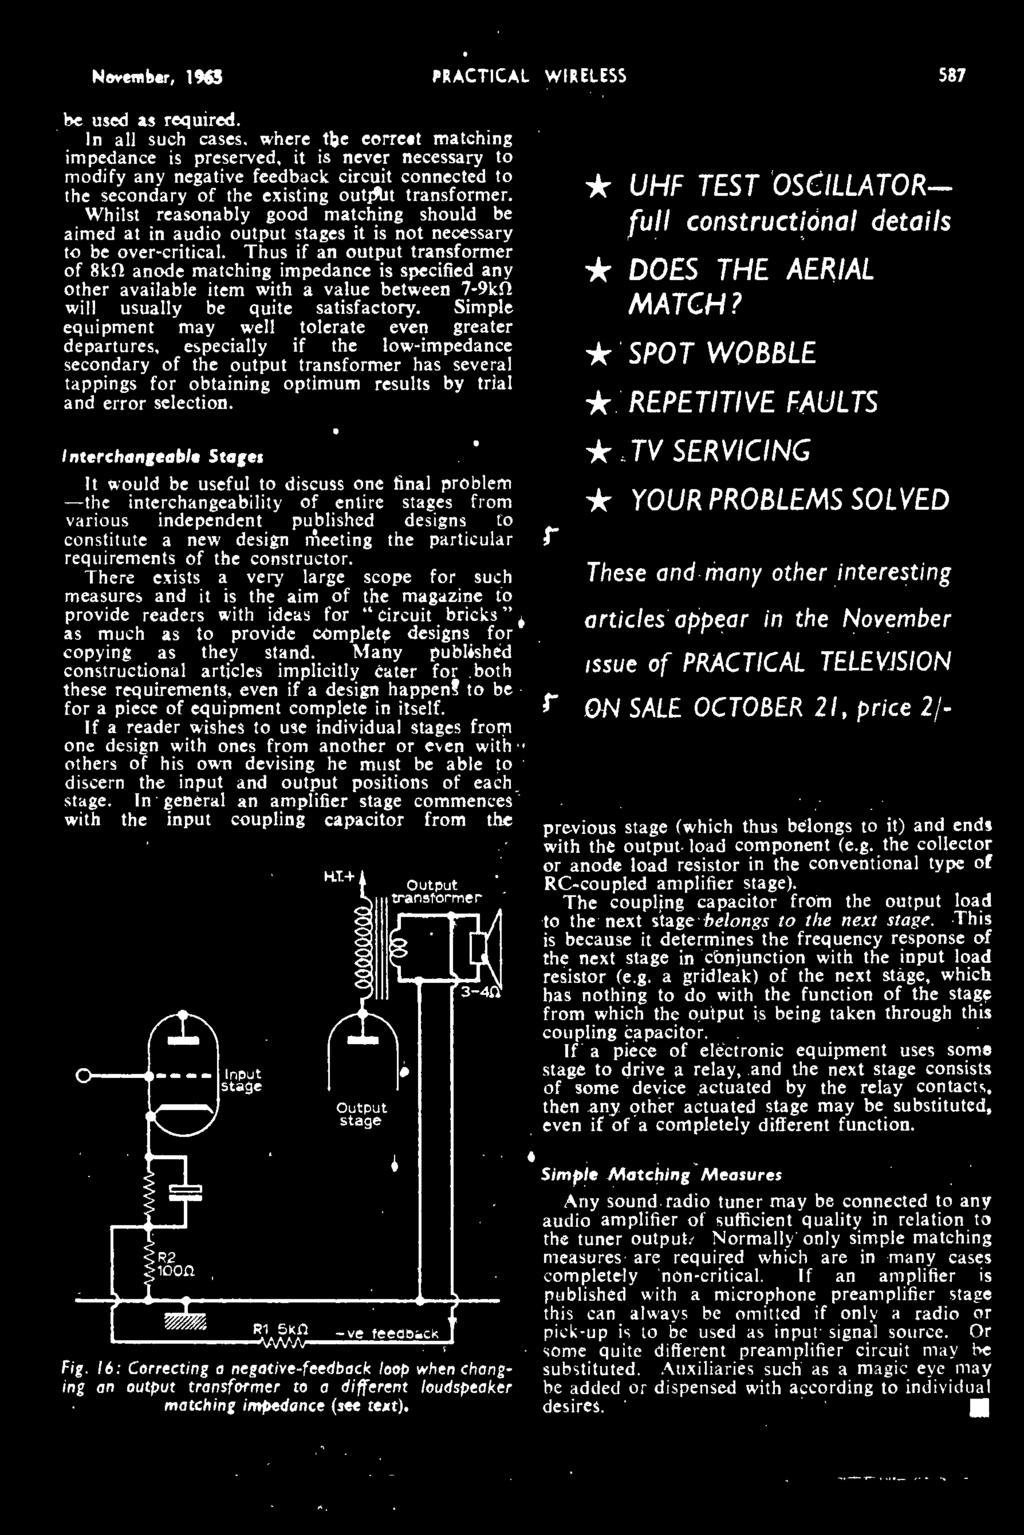 W I Reless Free Inside Miniature Af November 1965 Ohms Law Vr6 Wiring Diagram Hi Have A 02 It Will Not Fire On 1two New 1963 Practical Wireless 587 Be Used As Required